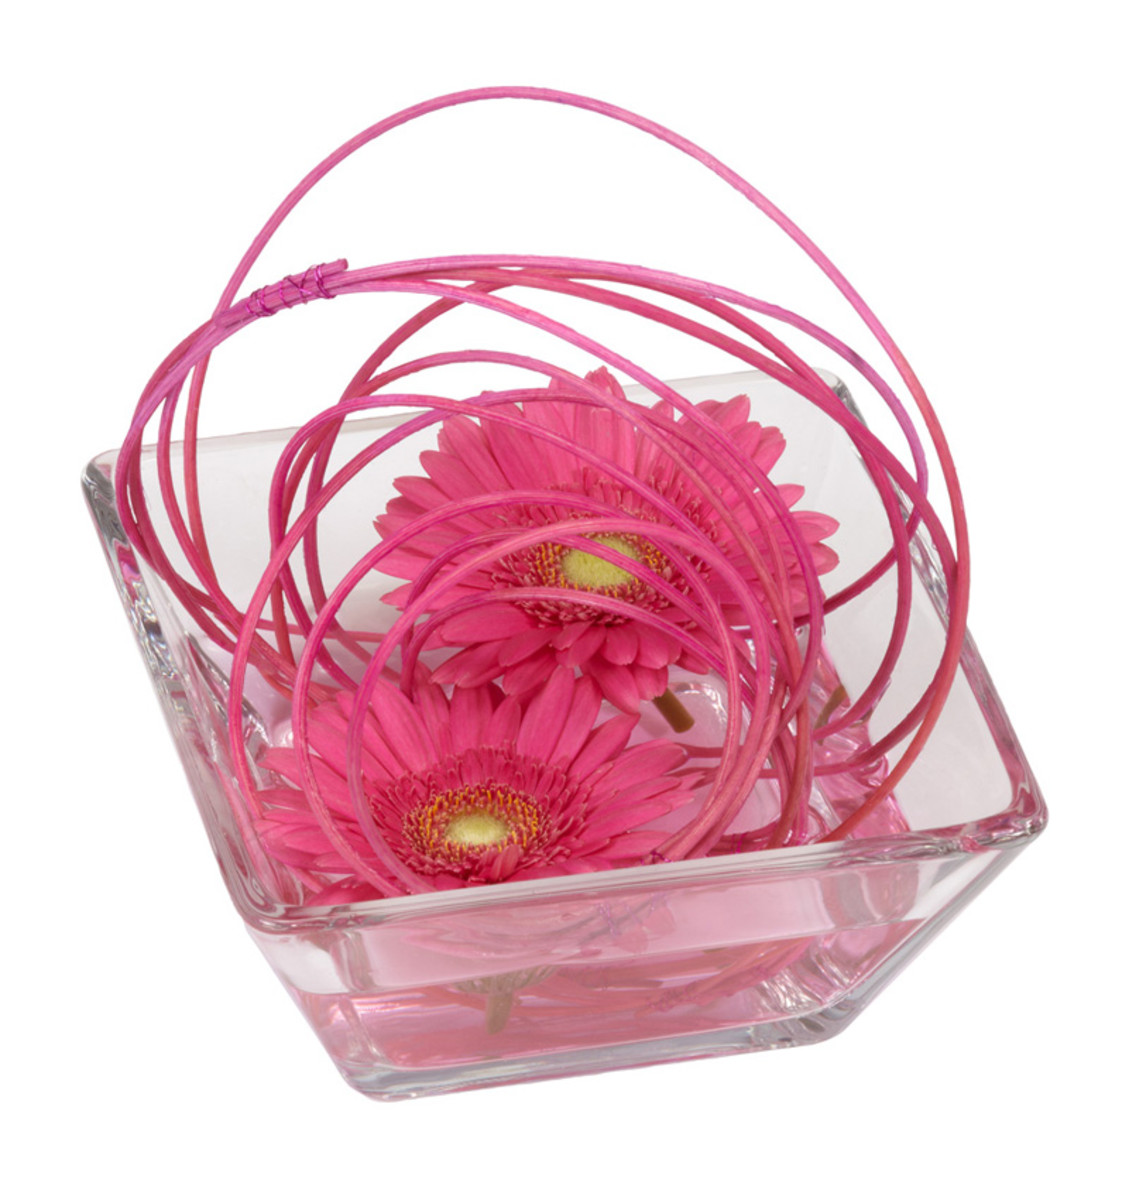 Gebera daisies are bright and modern, ideal for a Valentine's decoration. In this design they are placed in a shallow glass dish with middolino sticks, bound together with pink wire.